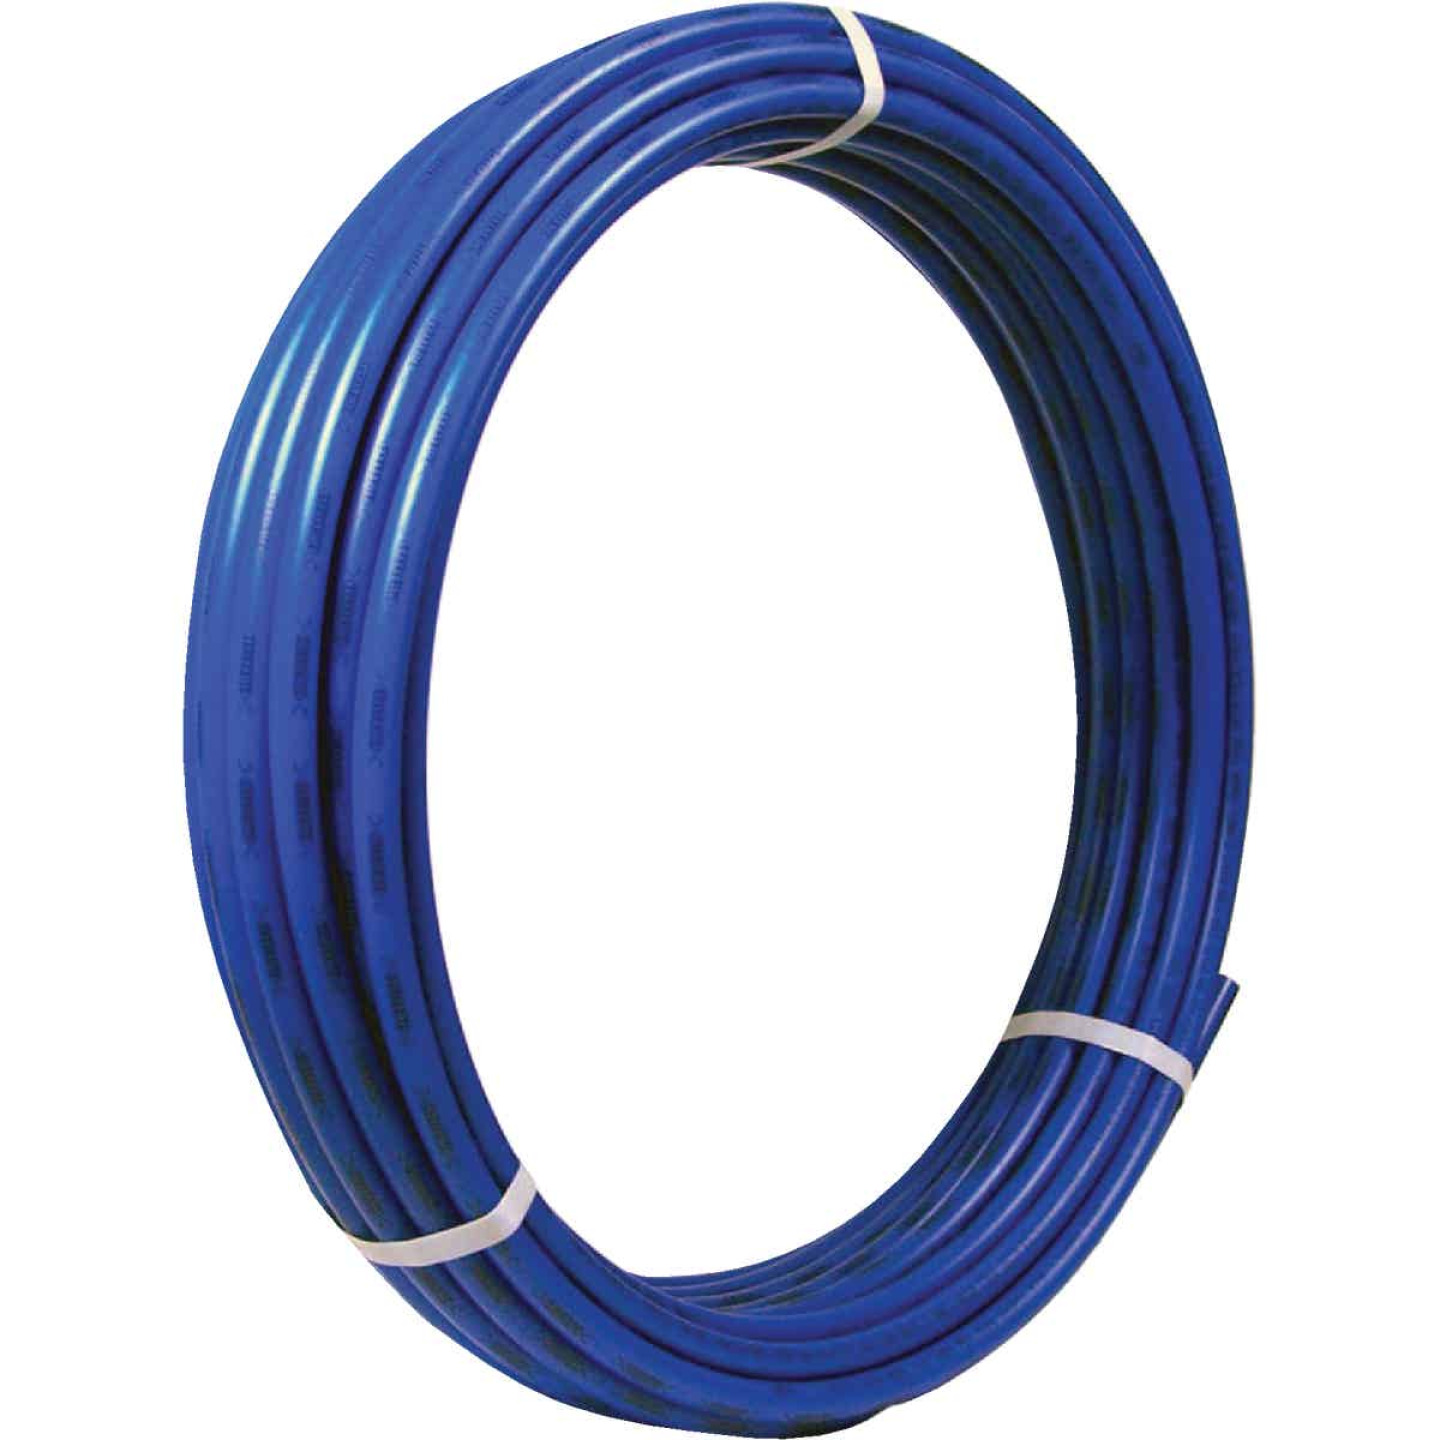 SharkBite 3/4 In. x 300 Ft. Blue PEX Pipe Type B Coil Image 1